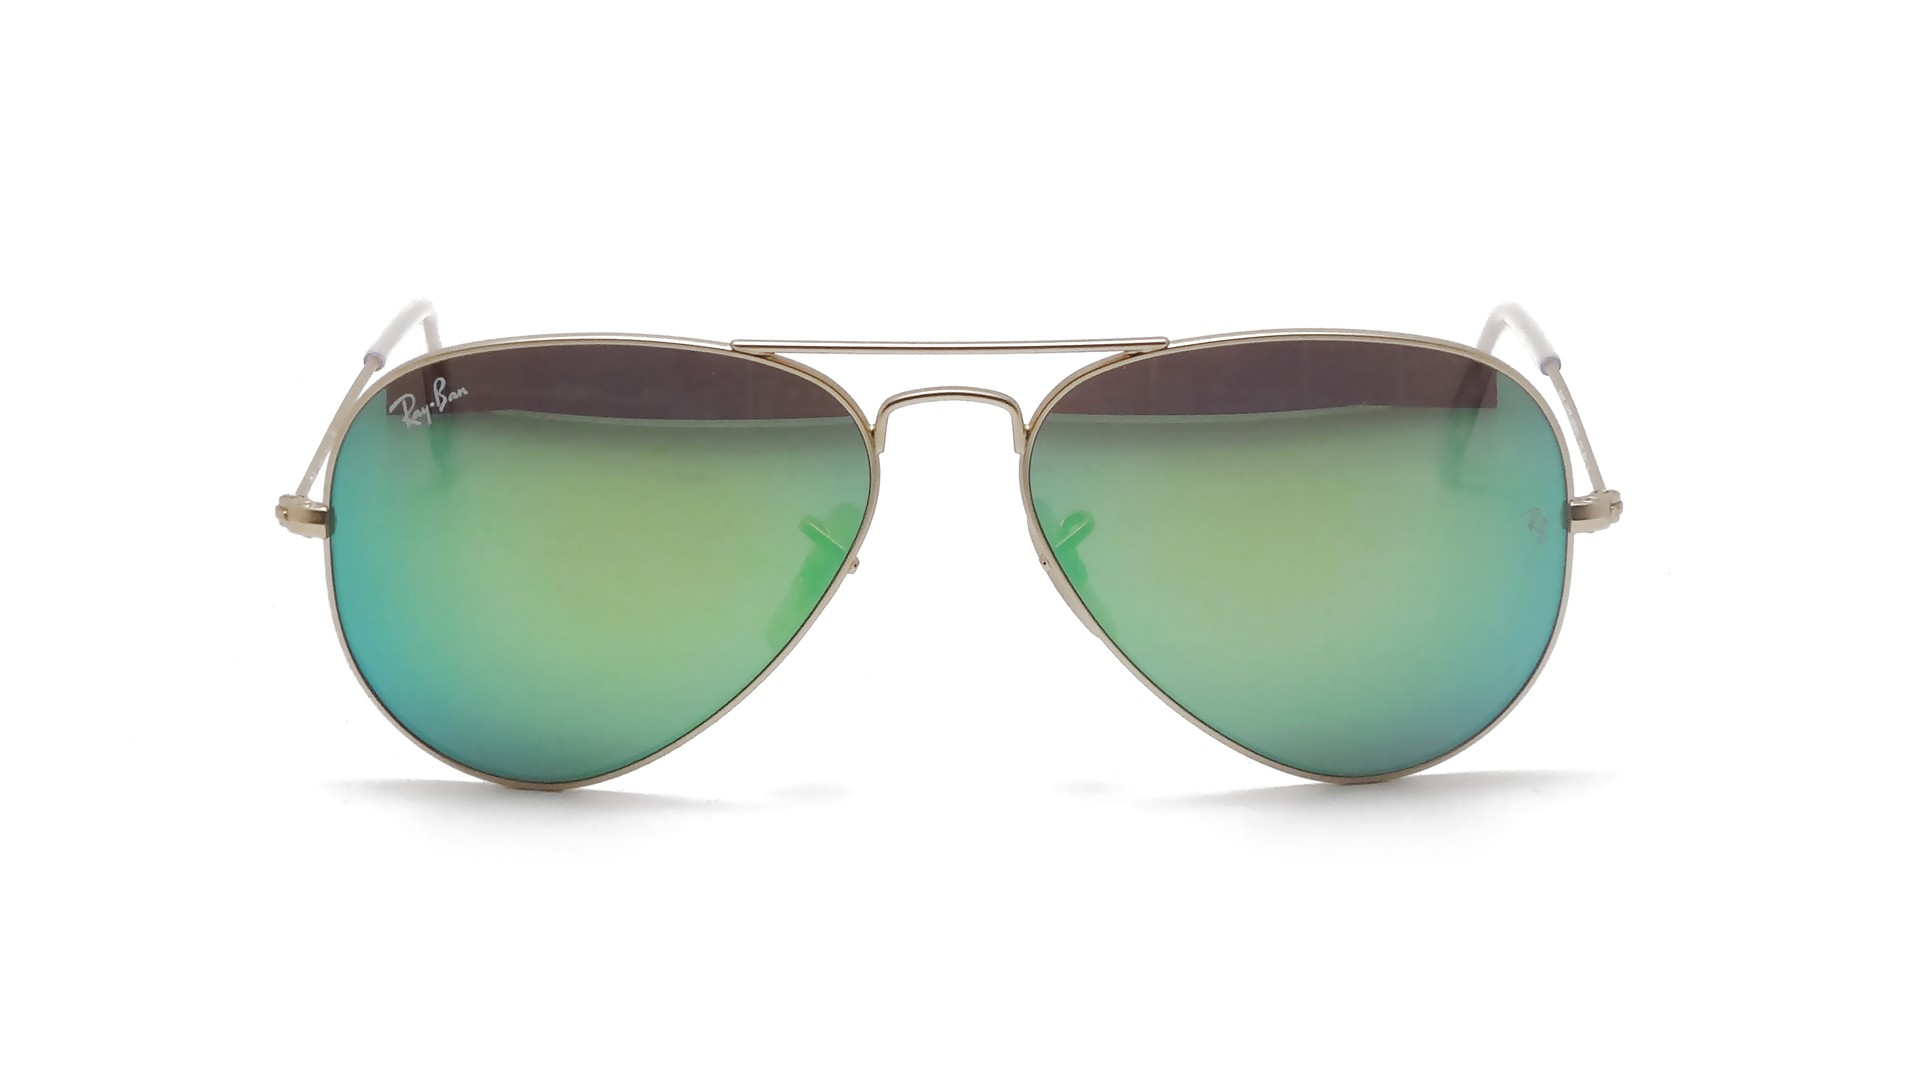 e3098864c1059 Ray-Ban Aviator Large Metal Or Mirrored Green RB3025 112 19 ...